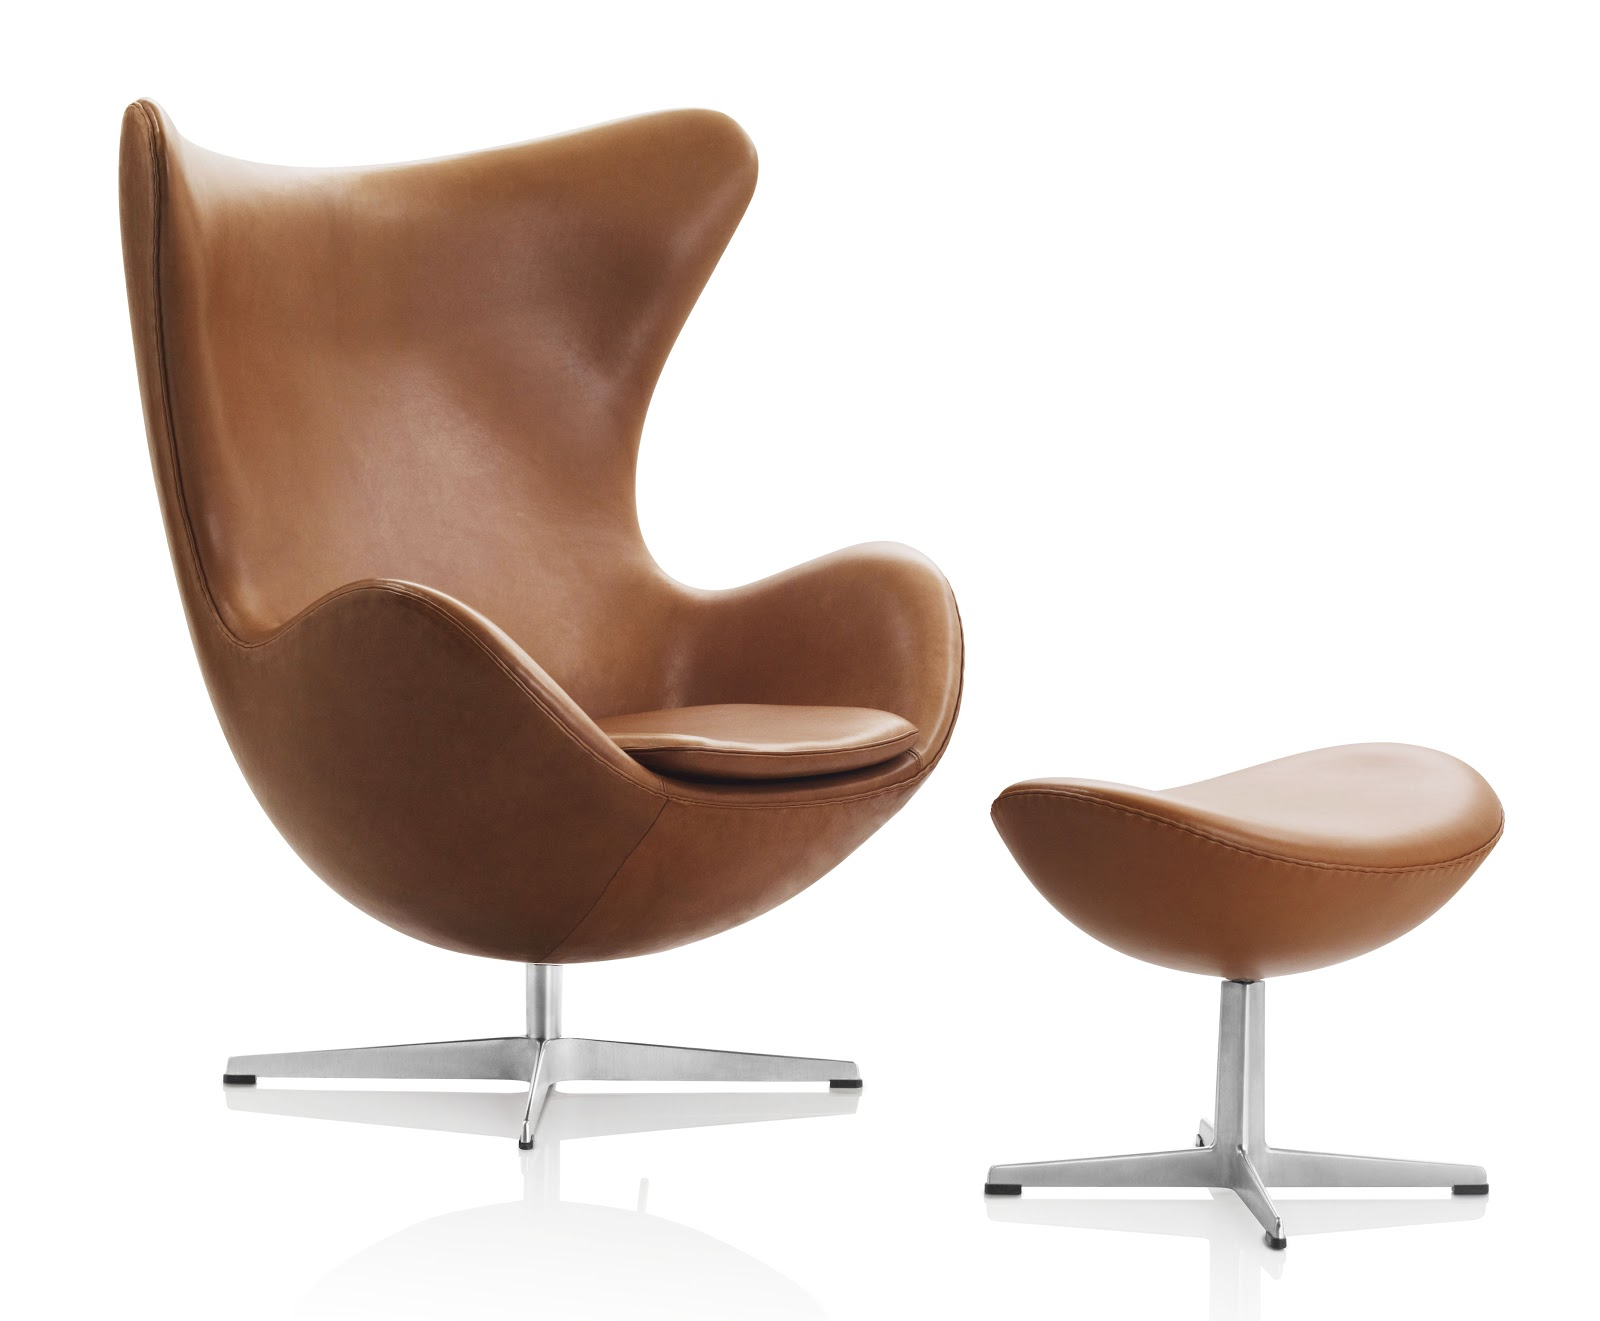 Jacobsen Egg Chair Leather Rustic Pub Tables And Chairs Walnut Leater Fritz Hansen Arne